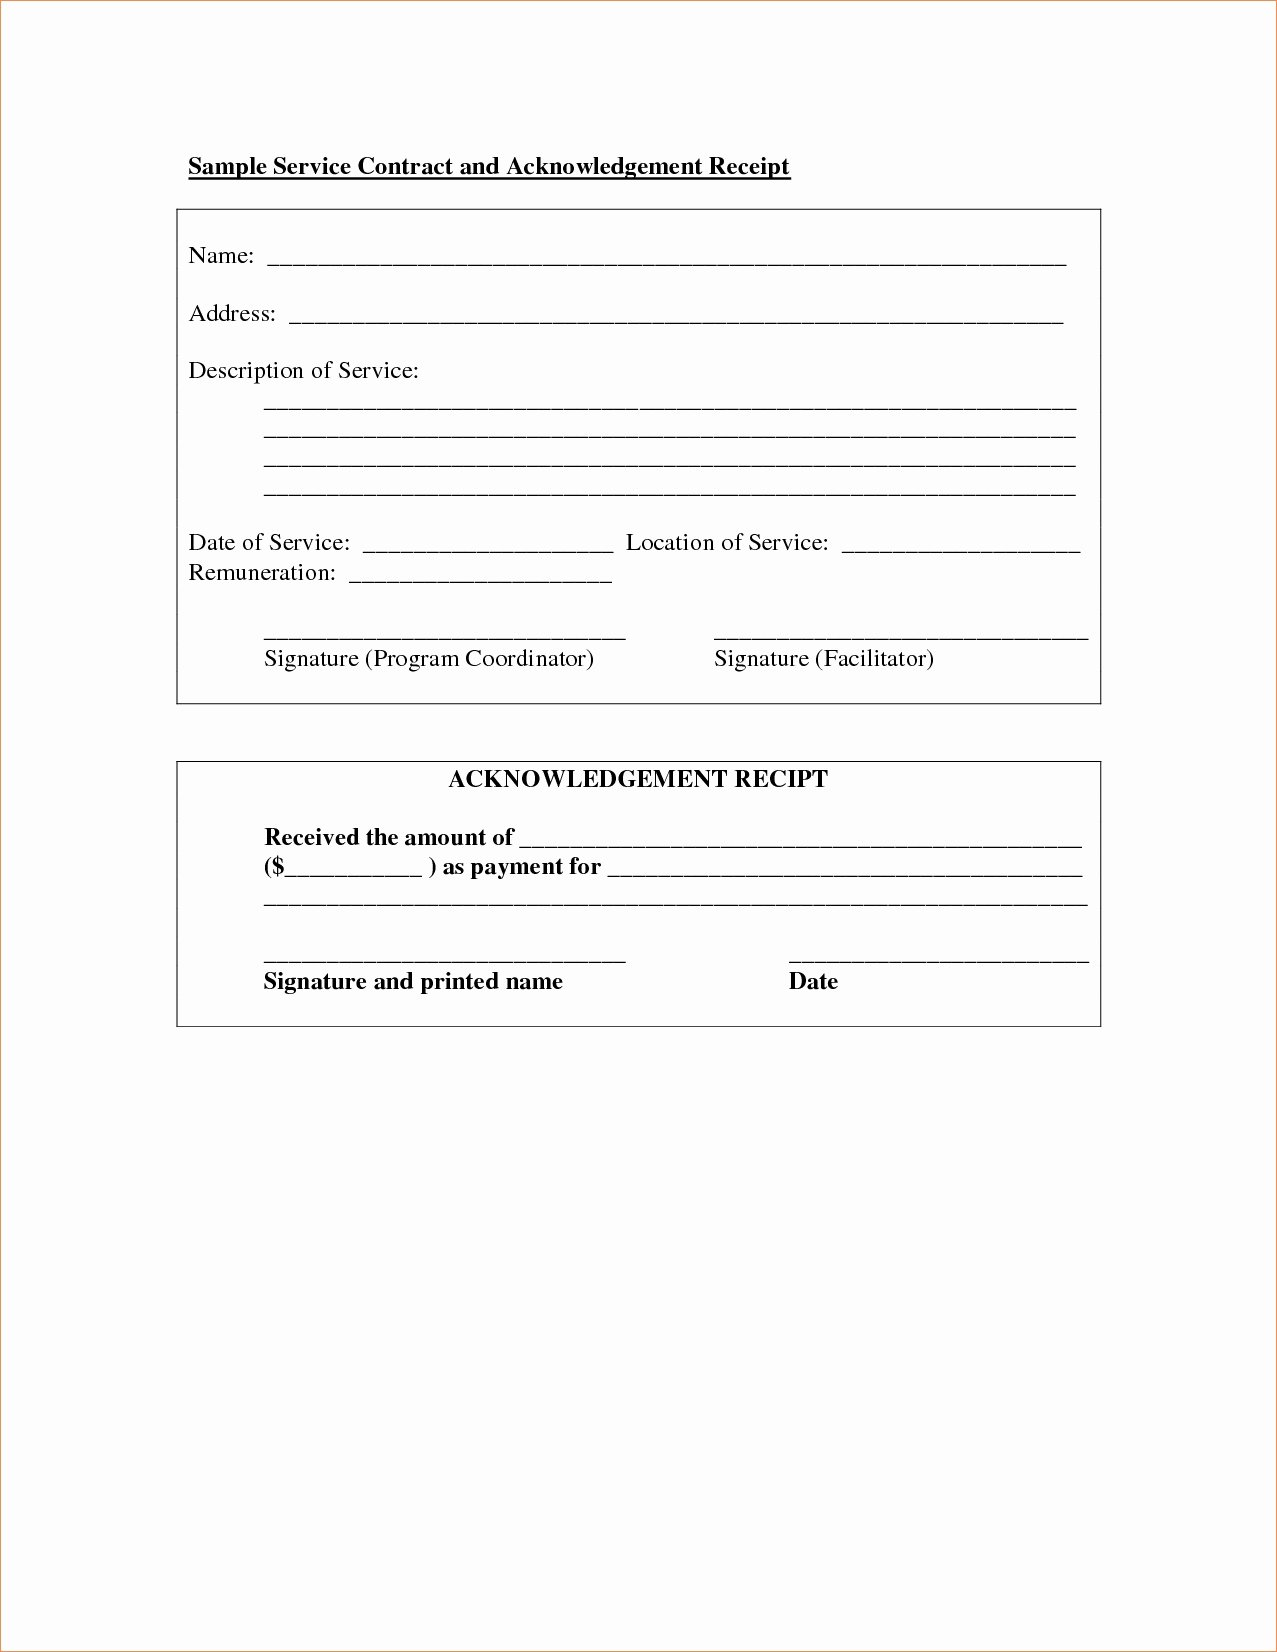 Simple Service Contract Template Unique Service Agreement Template Doc Regular Simple Service